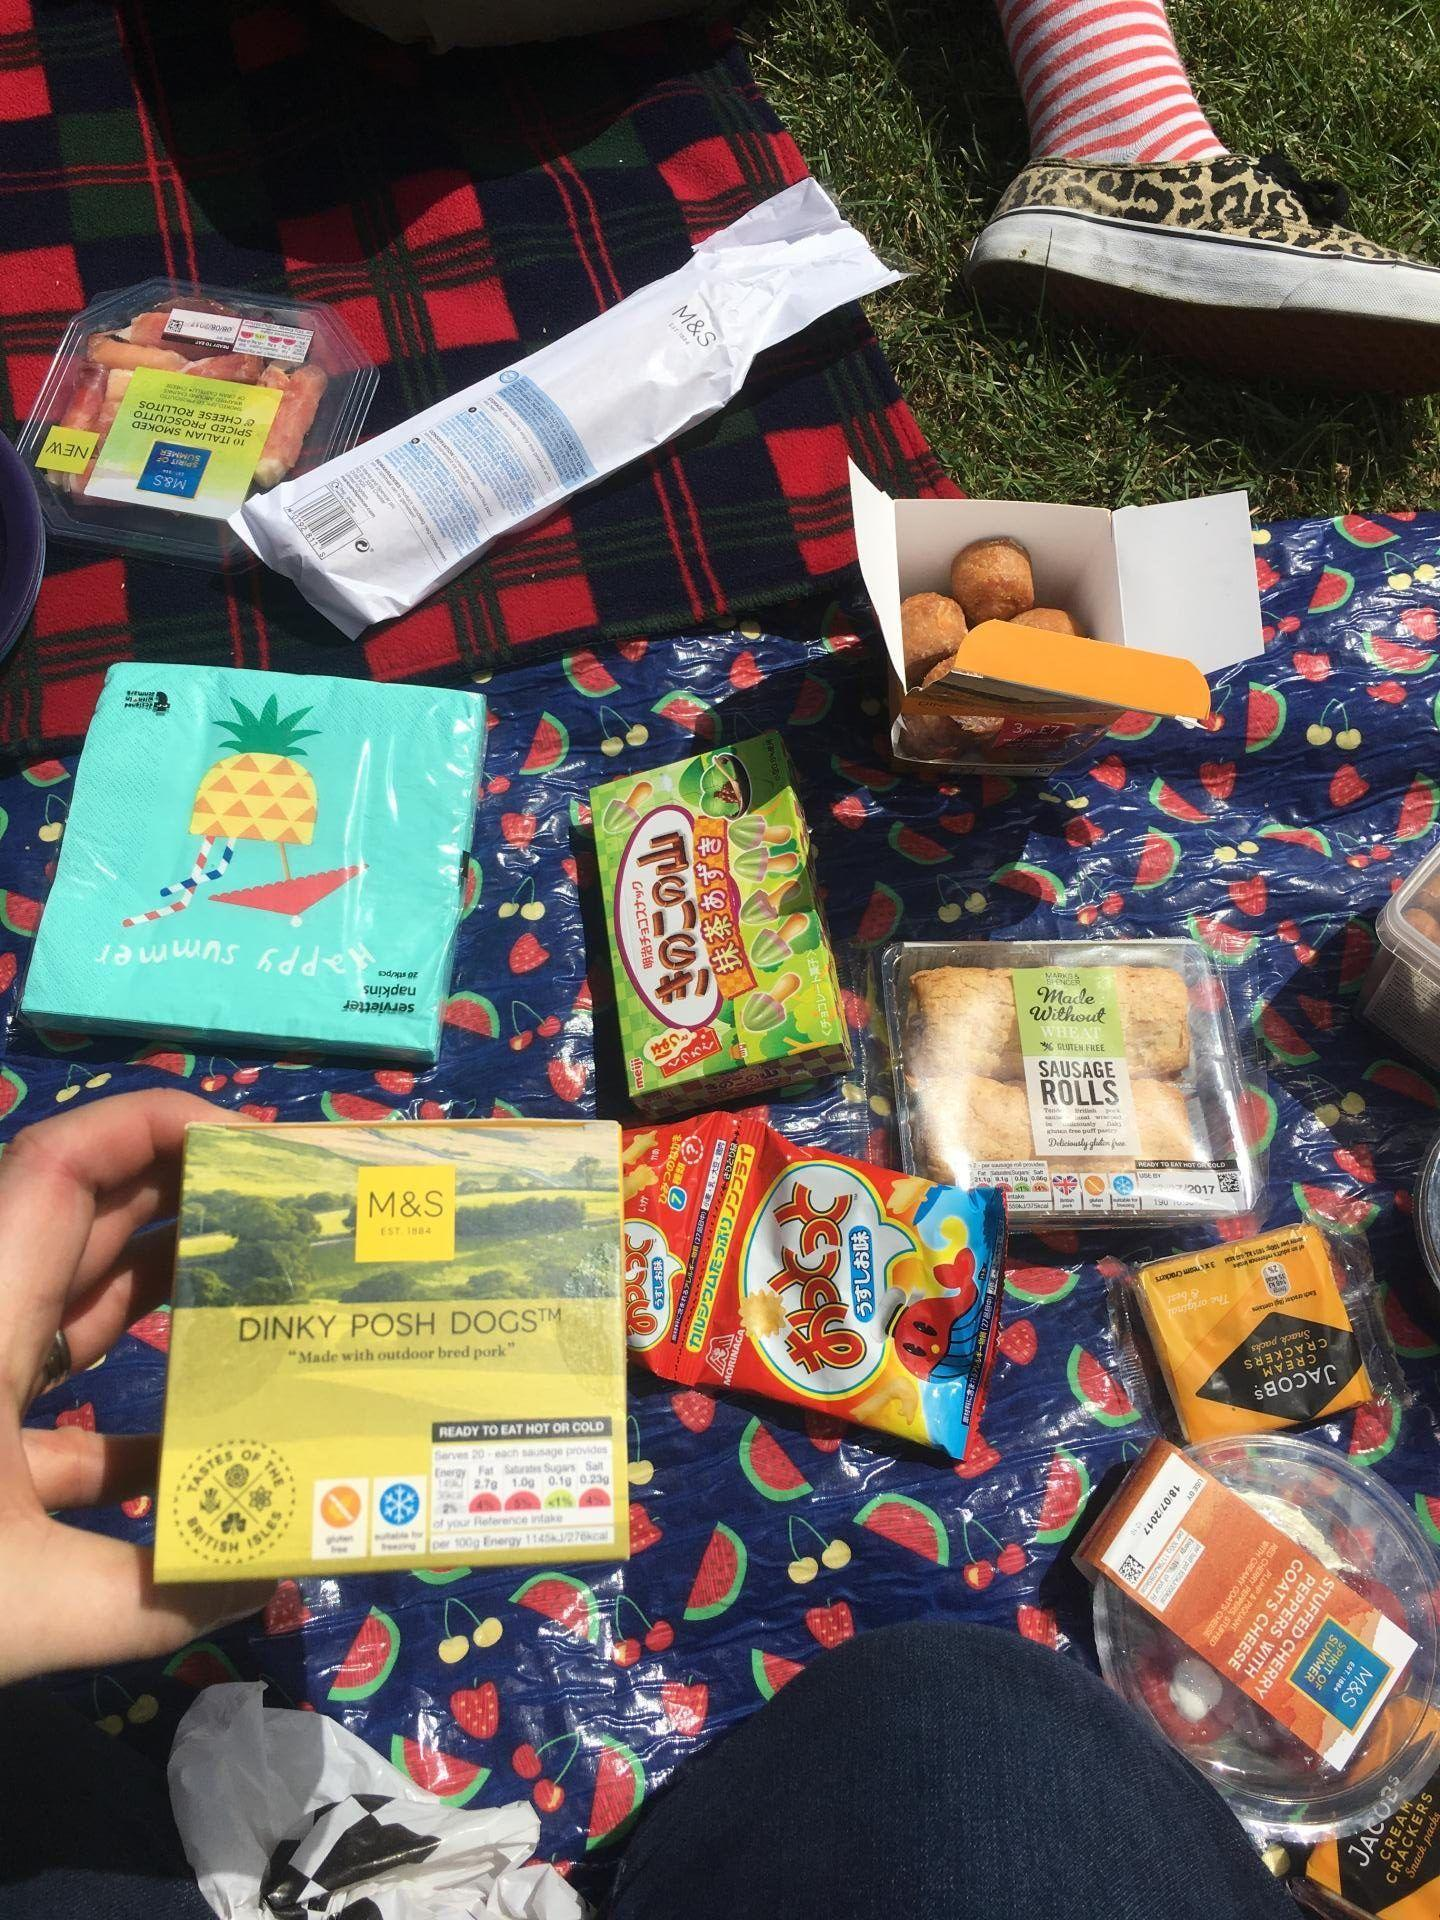 adventures of a gluten free globetrekker Went - Ate - Loved: July 2017 Monthly Round Up